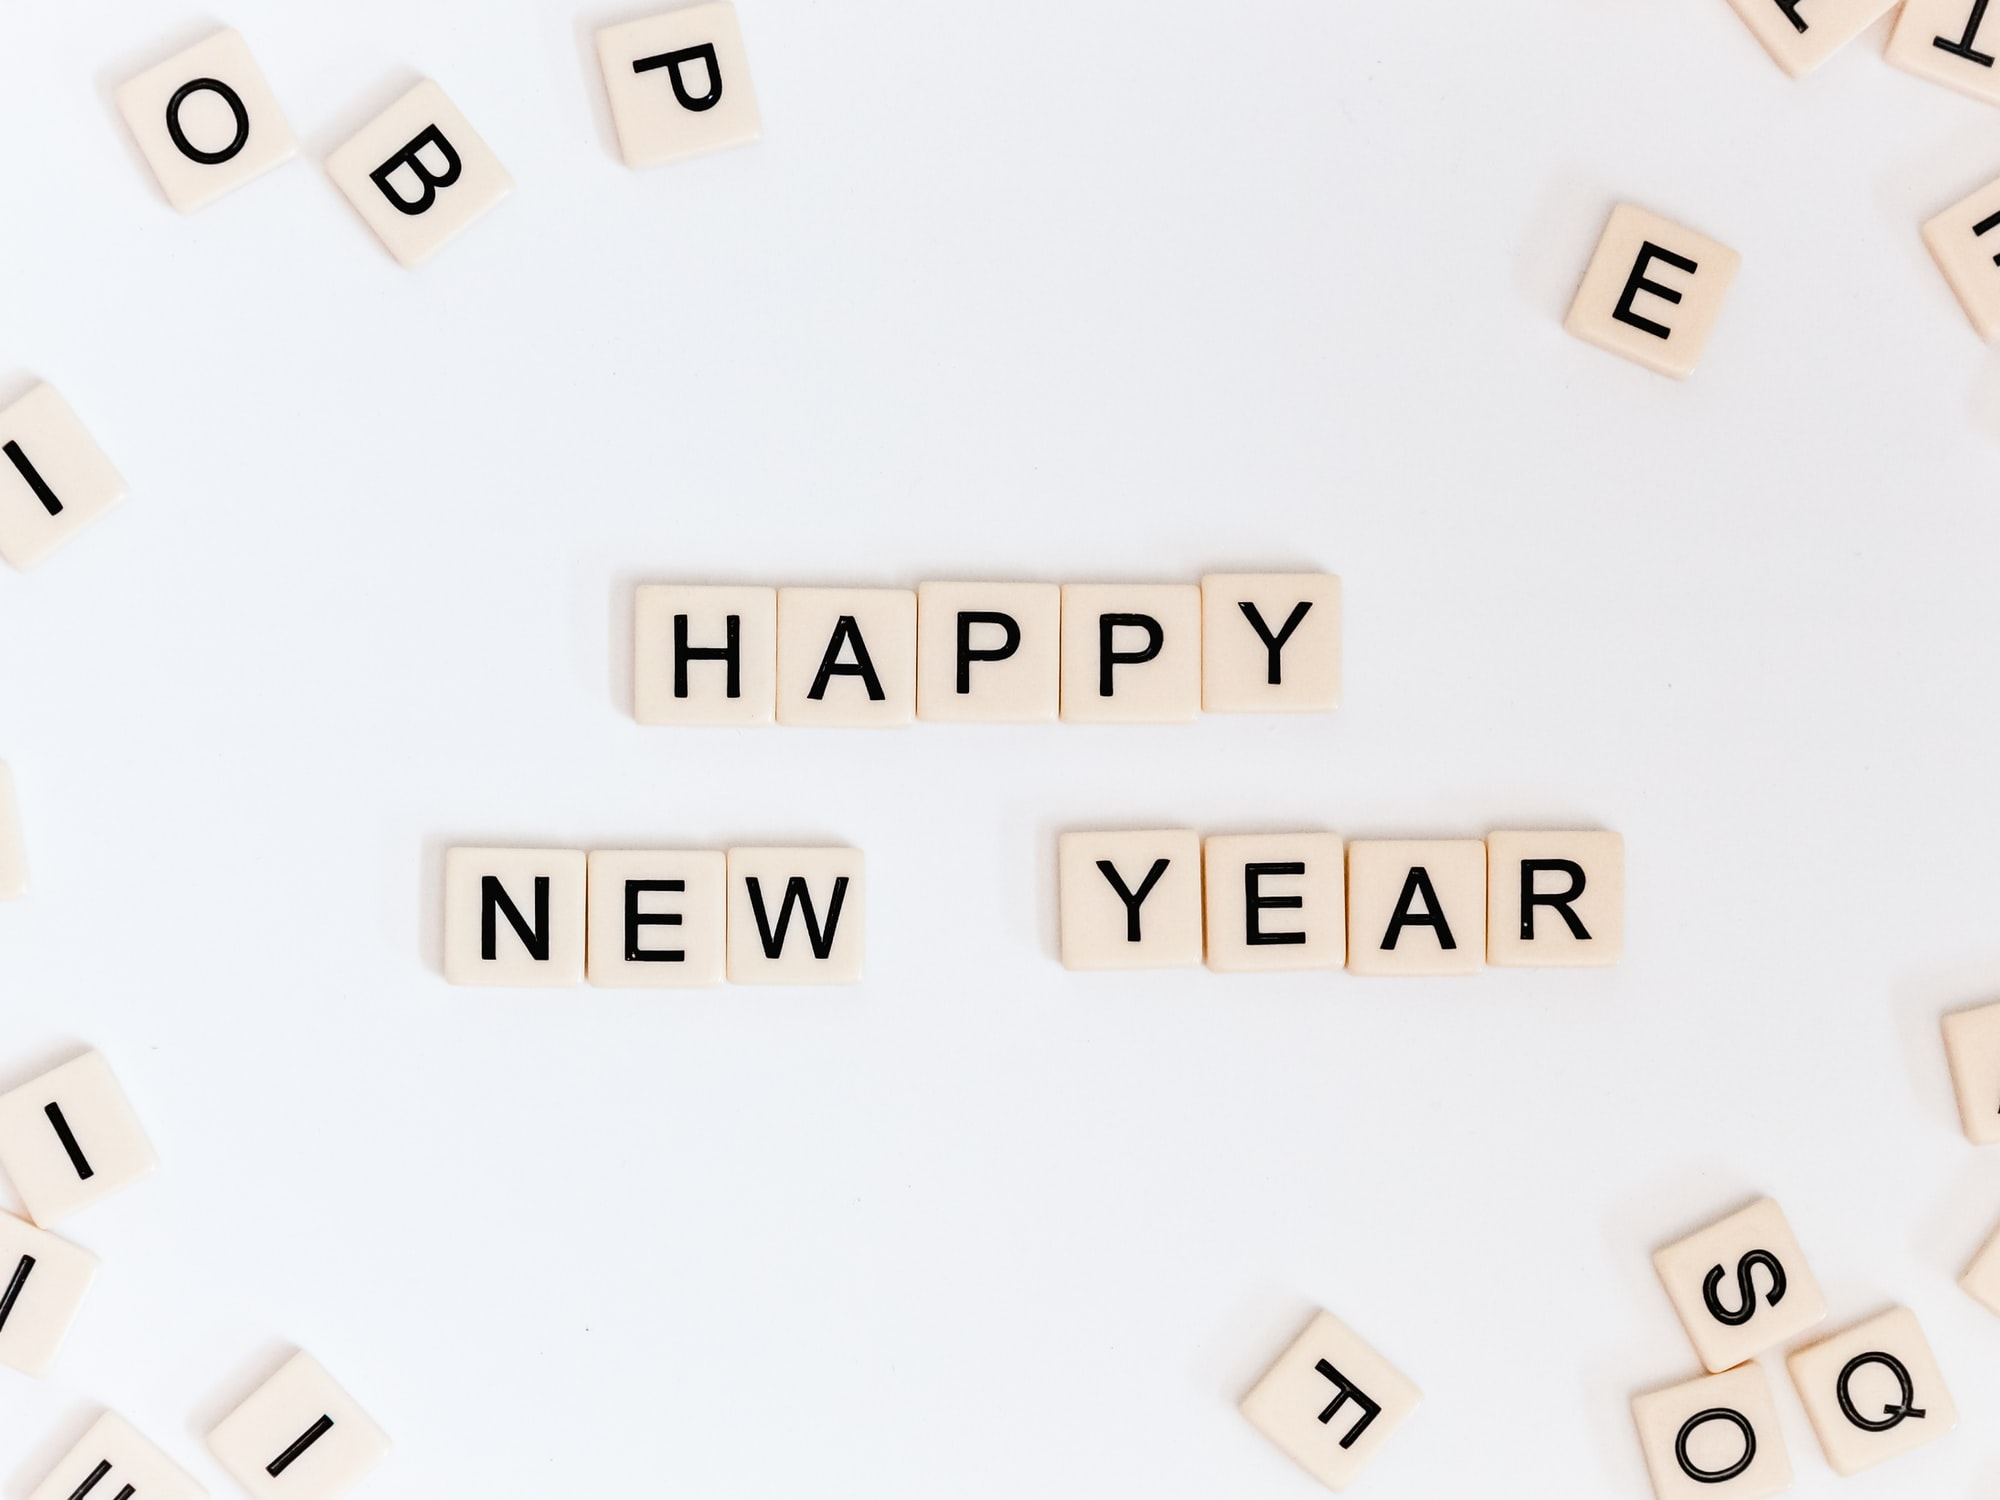 January Newsletter - Wishing you a Happy New Year 2021